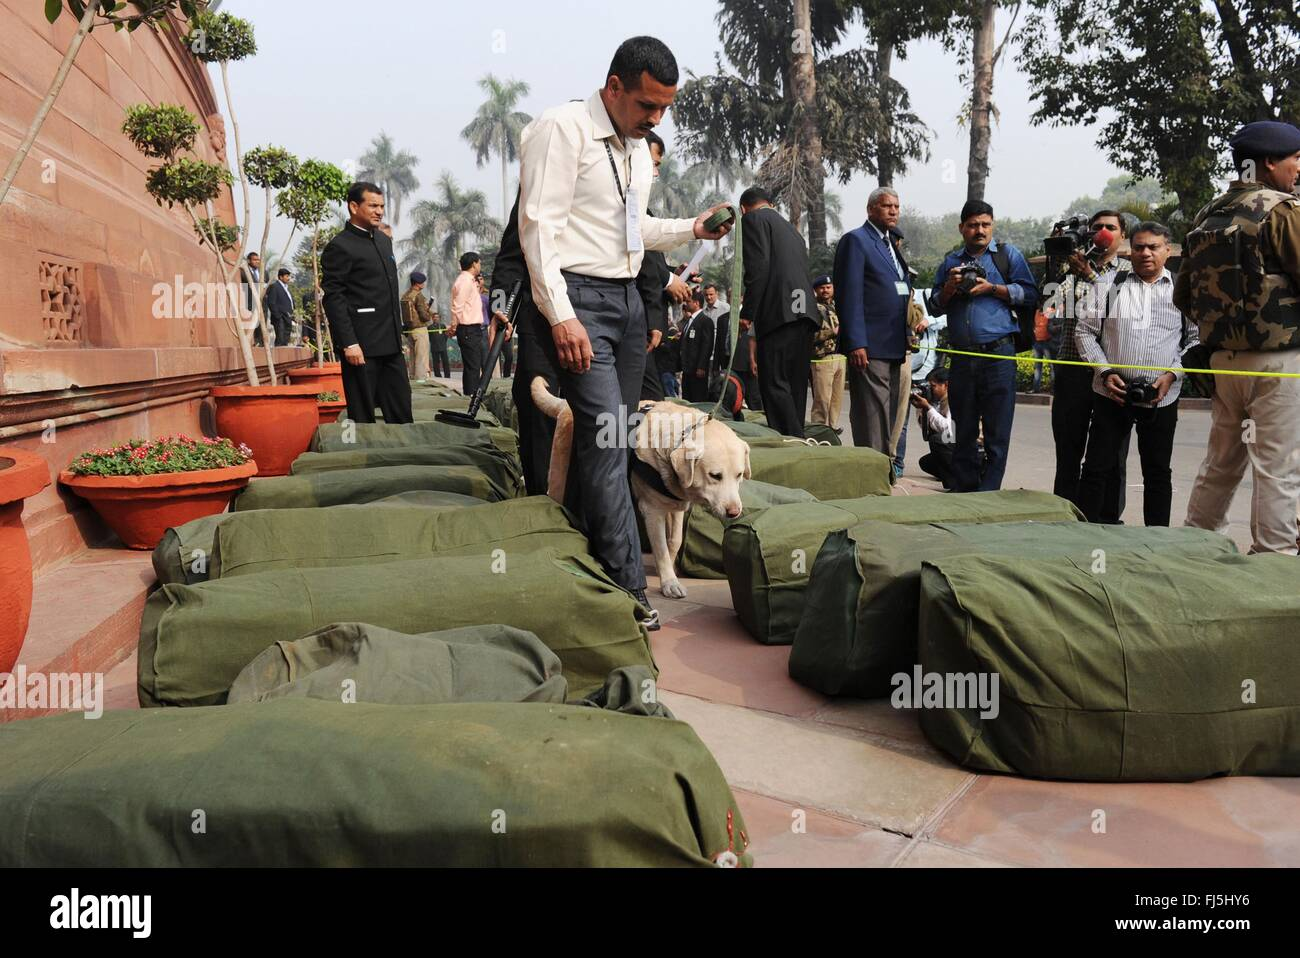 New Delhi, India. 29th Feb, 2016. Bags containing the Indian Federal Budget are checked by a bomb sniffing dog as - Stock Image